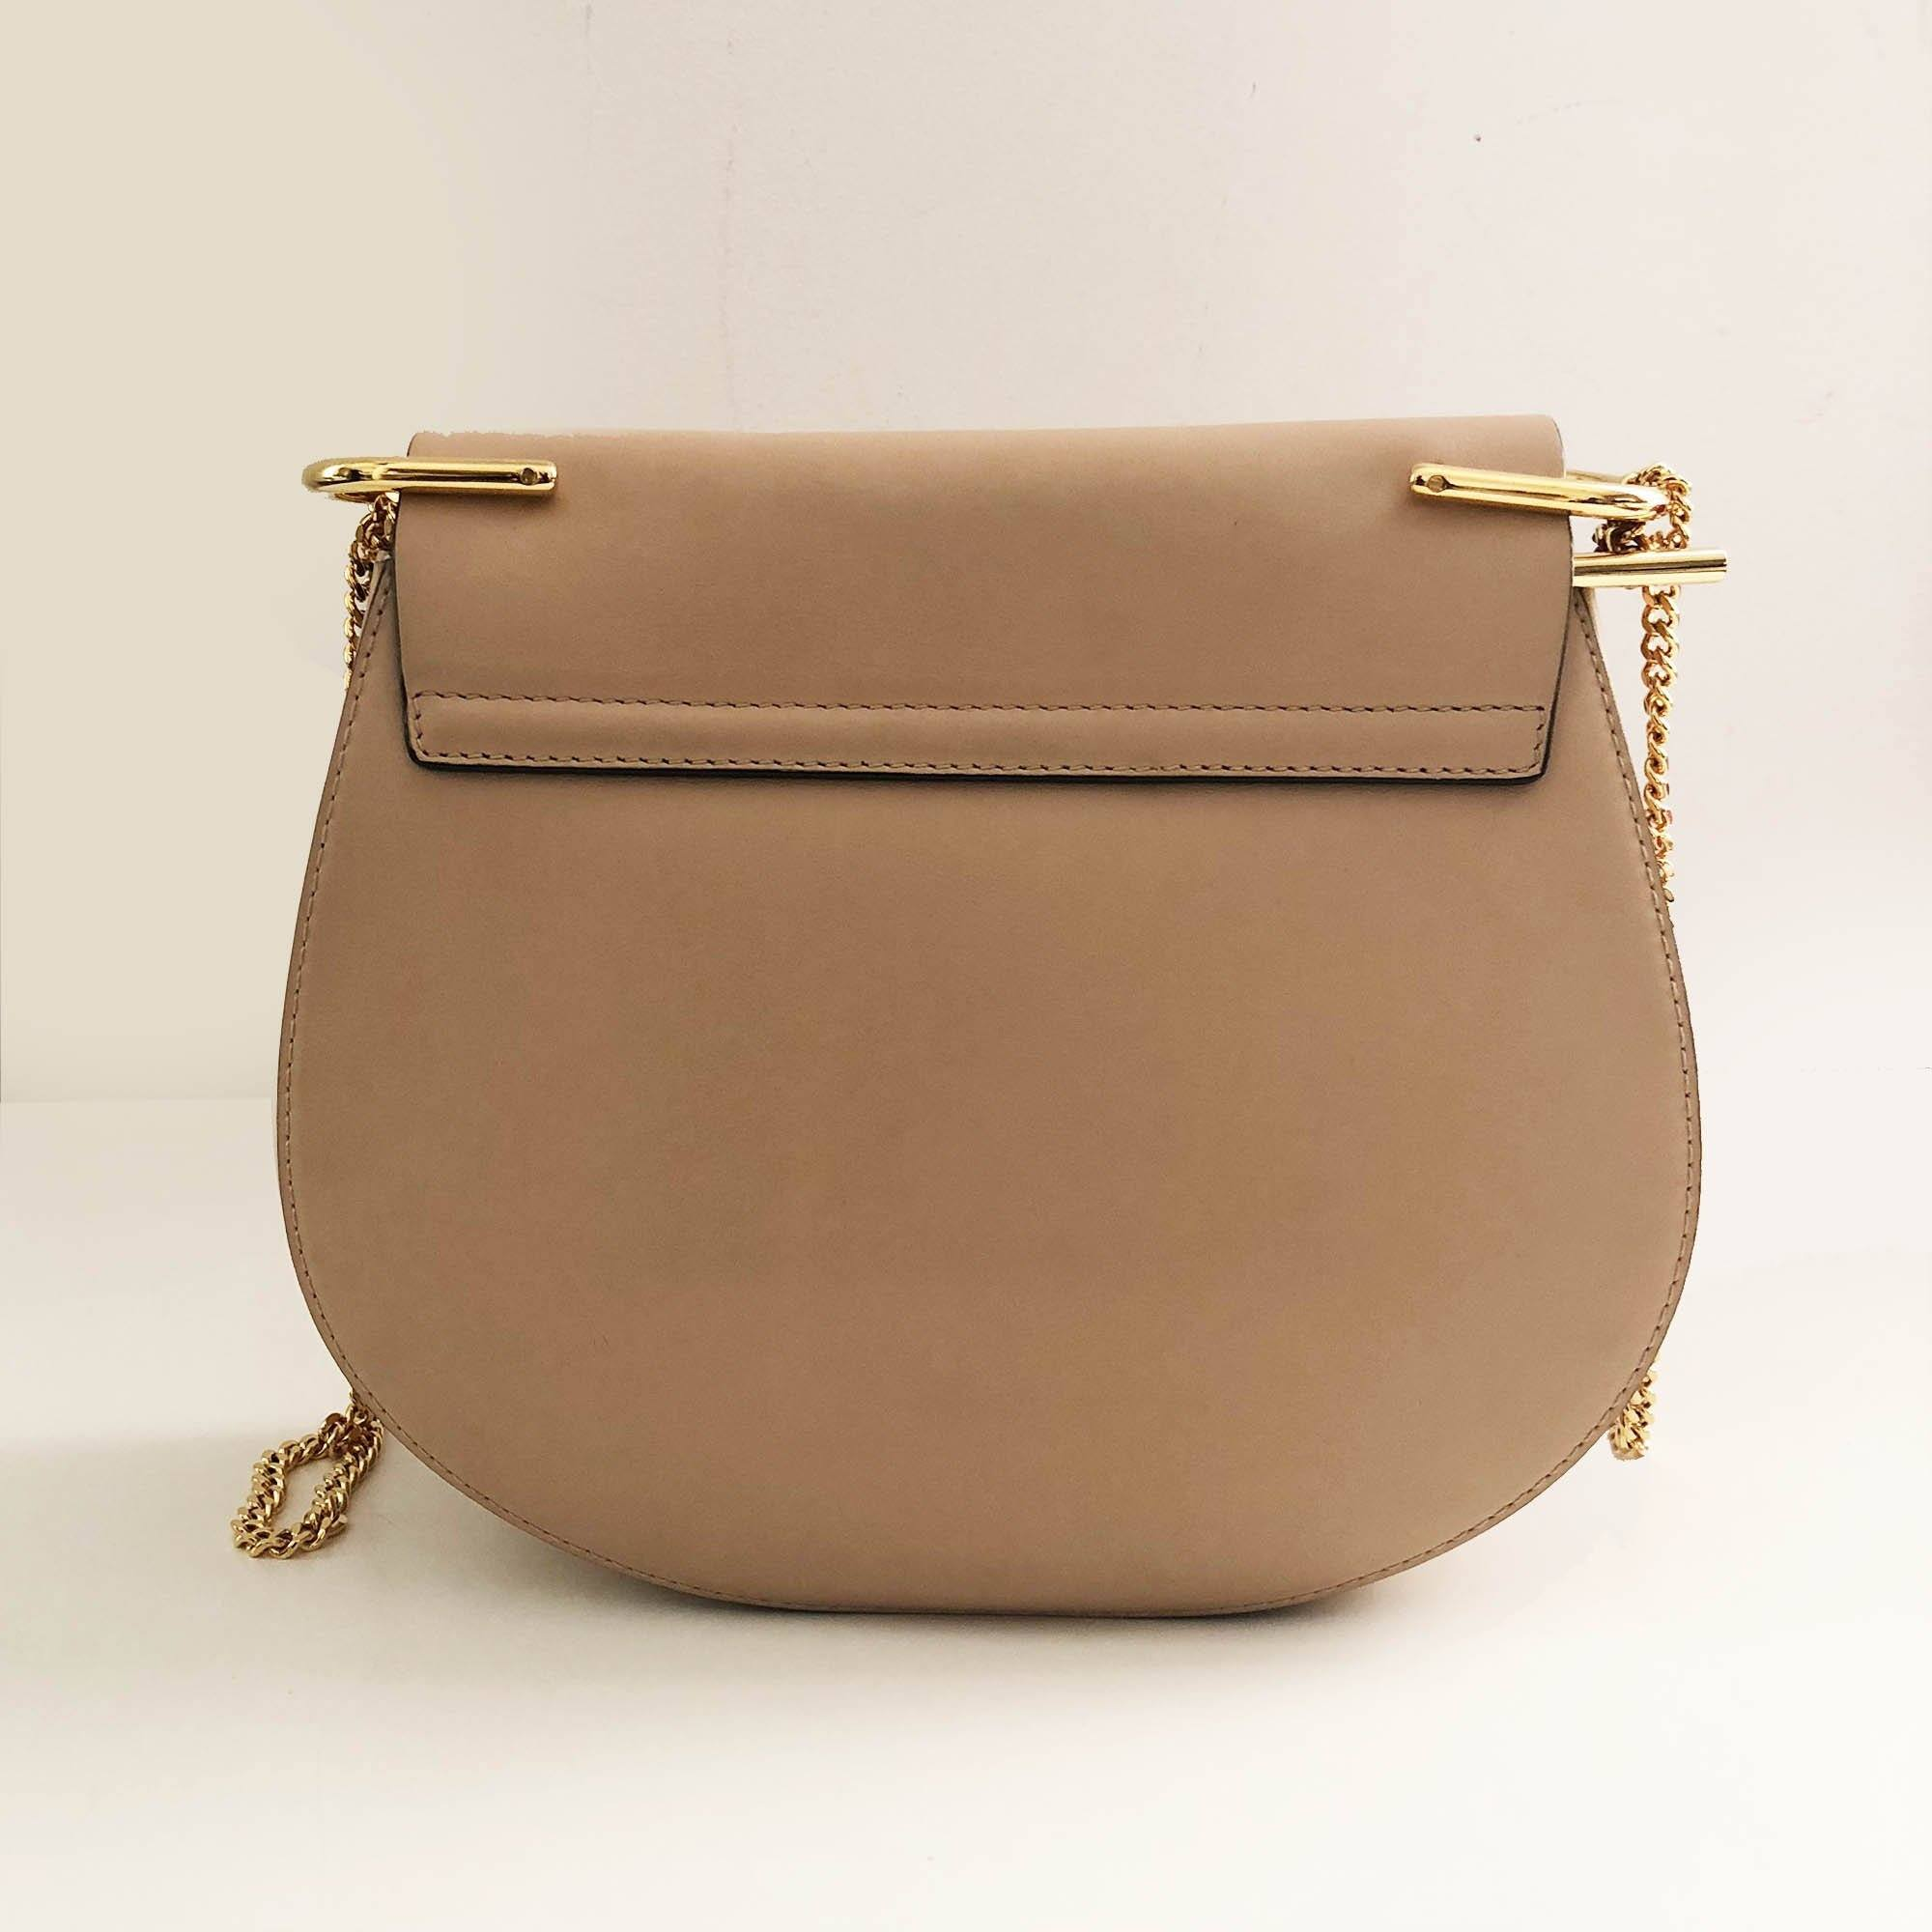 Chloé Drew Small Python Shoulder Bag